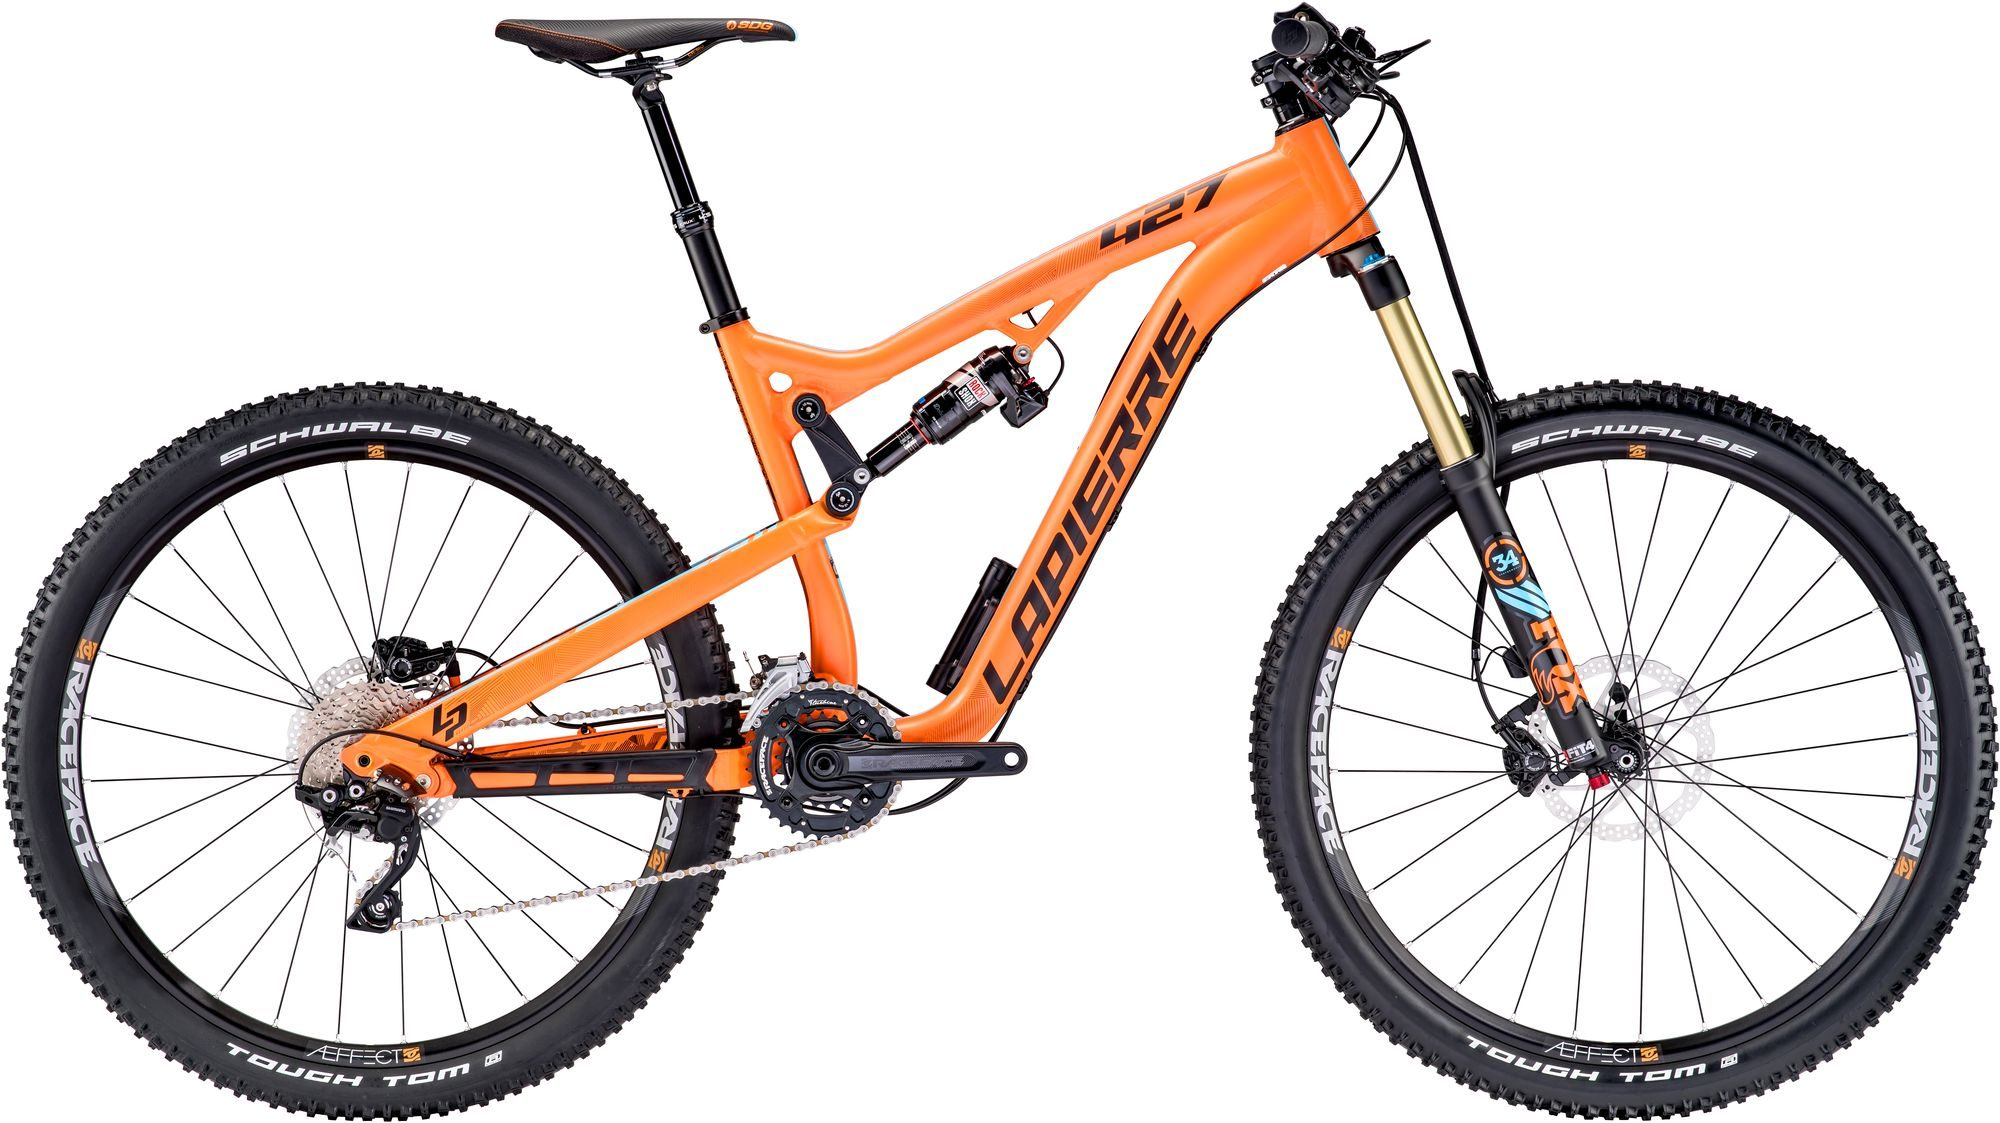 VTT Lapierre Zesty AM 427 2016